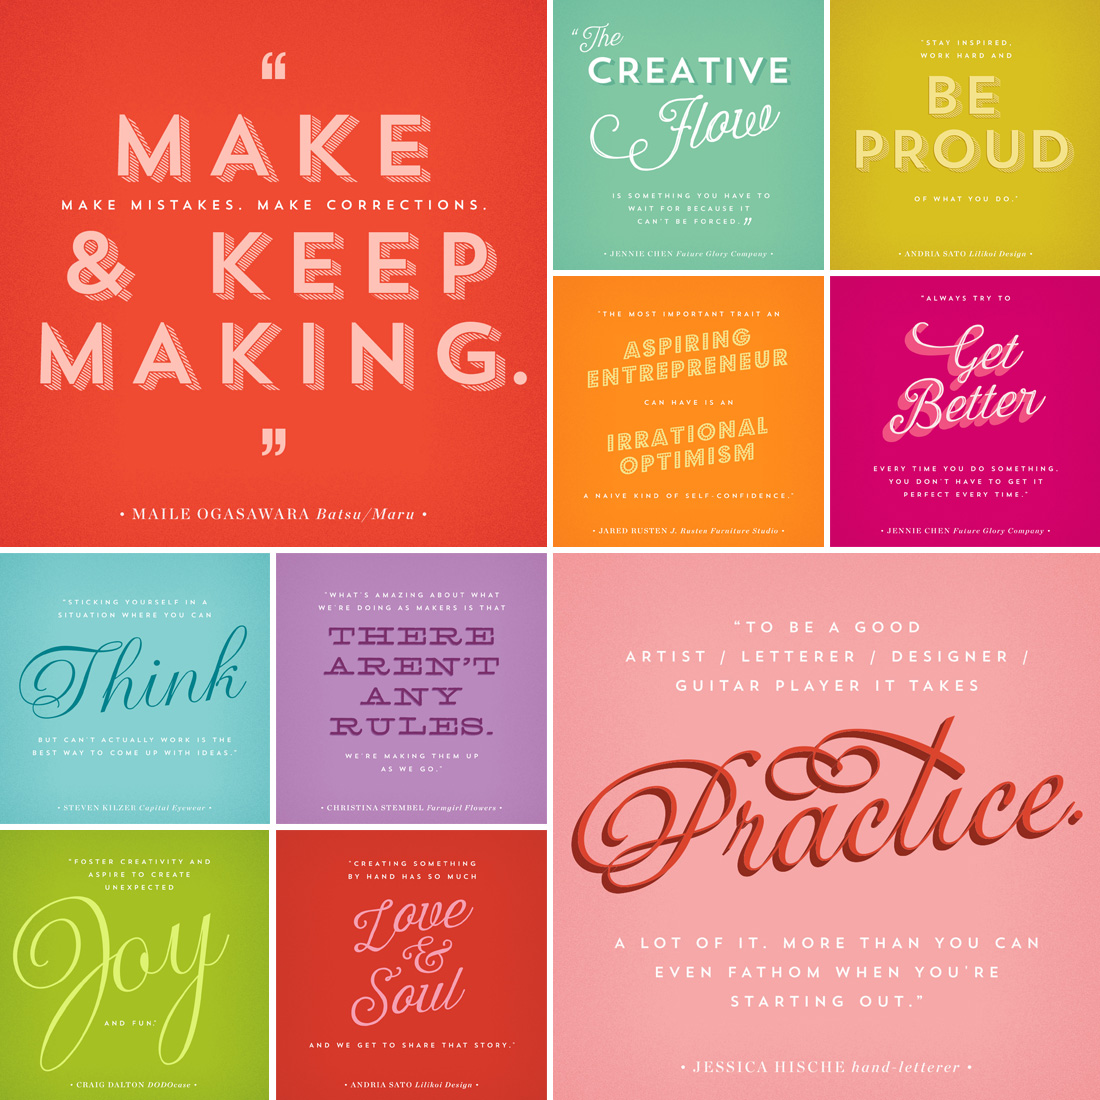 #iamcreative: 10 Quotes About Creativity | Brit + Co